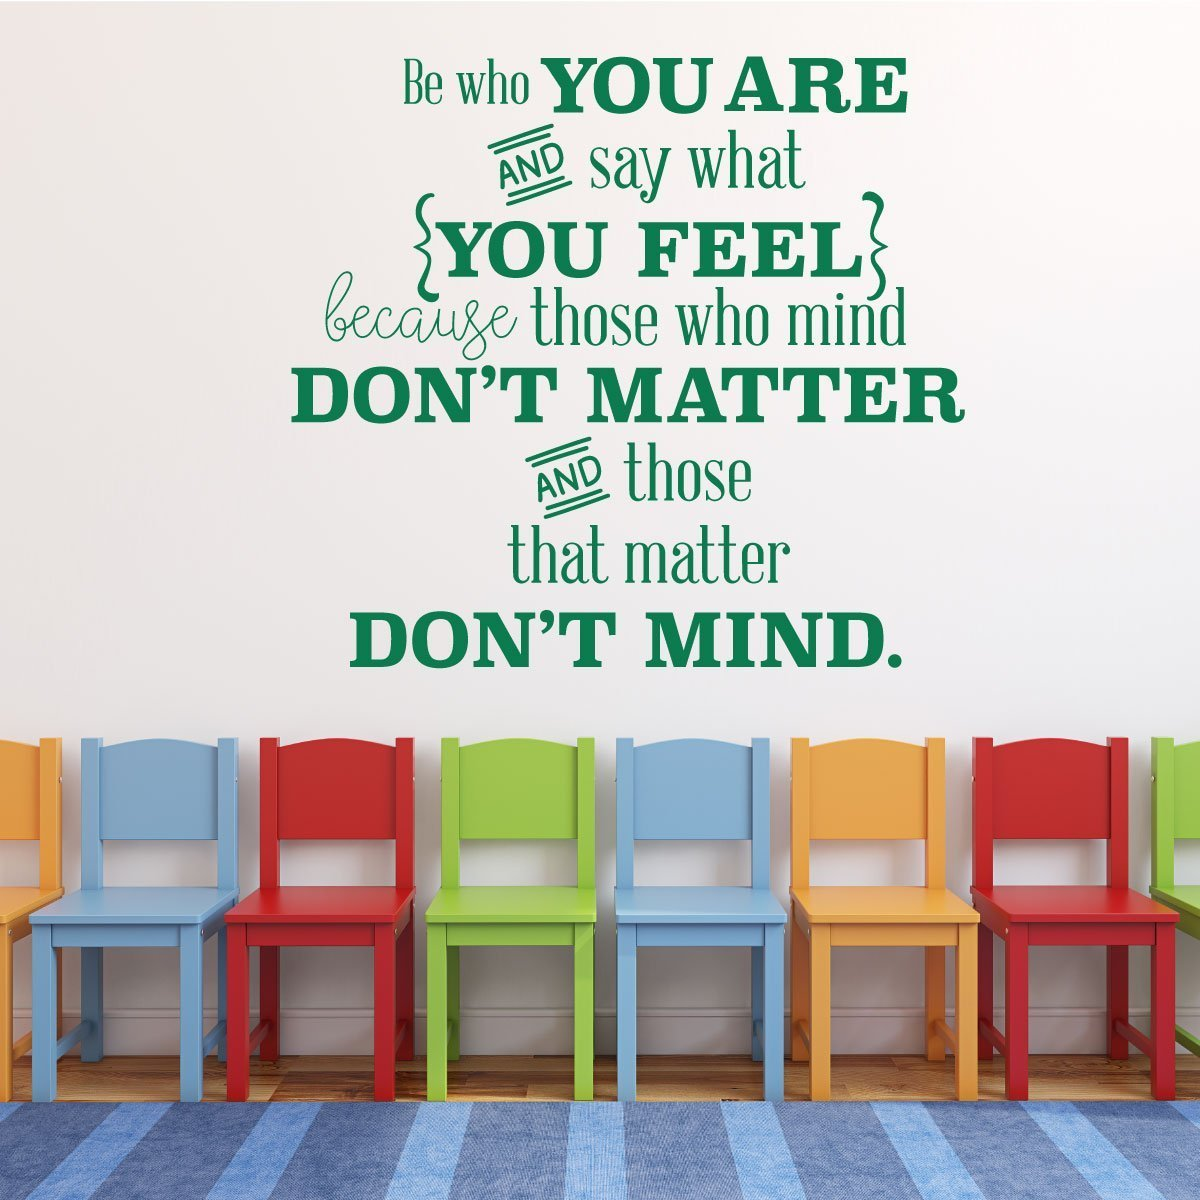 Classroom Decorations - Motivational Be Who You Are Quote, You Matter Vinyl Wall Decal Sign for Kids, Teachers, Playrooms, and Classrooms